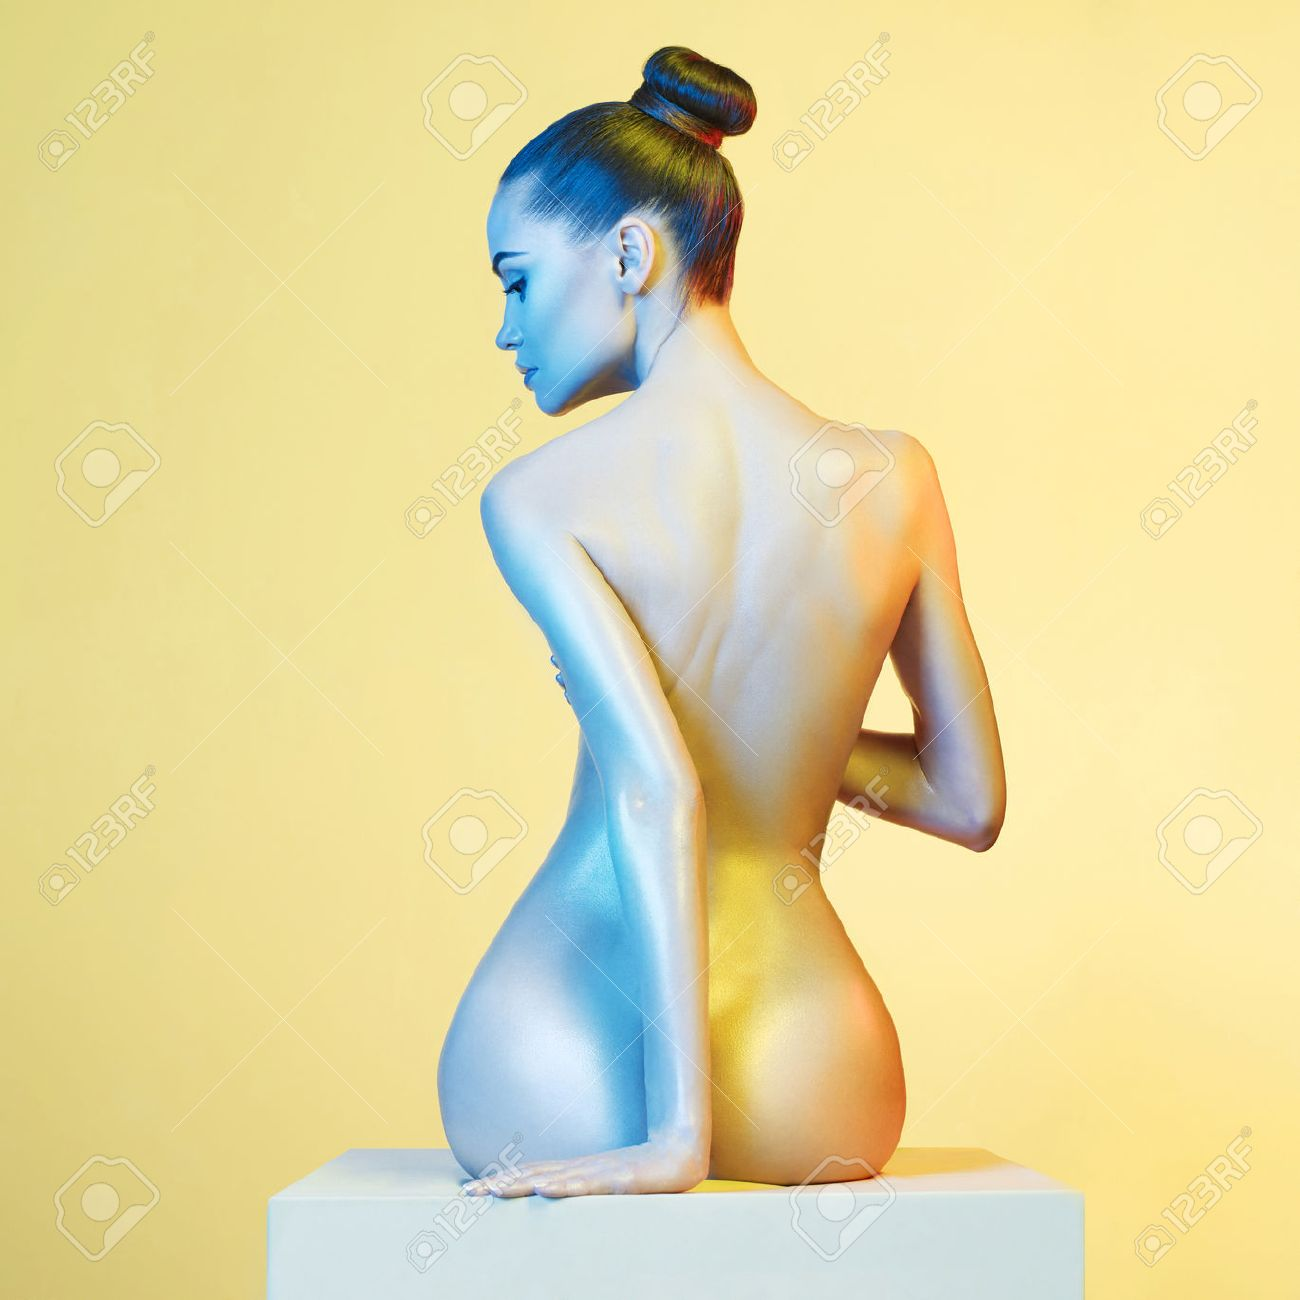 Fashion art photo of elegant nude model in the light colored spotlights Standard-Bild - 54667870